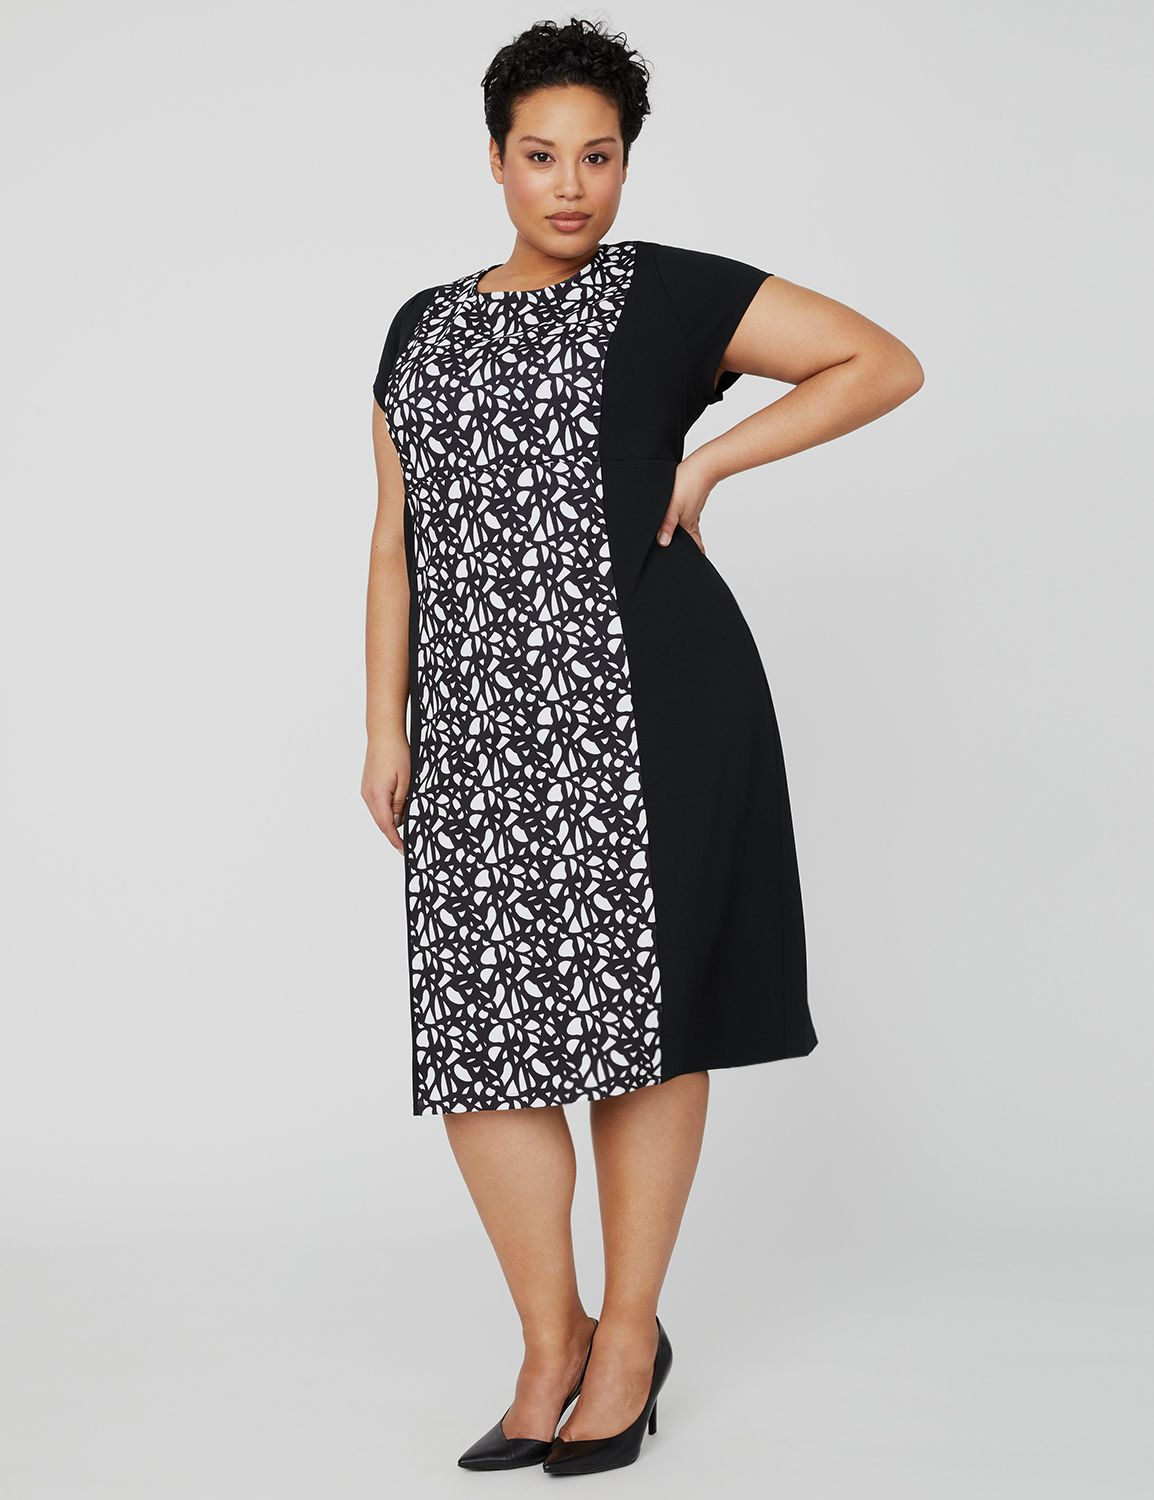 Mirage Crepe Dress 1091427 Printed Knit Crepe Dress MP-300100793